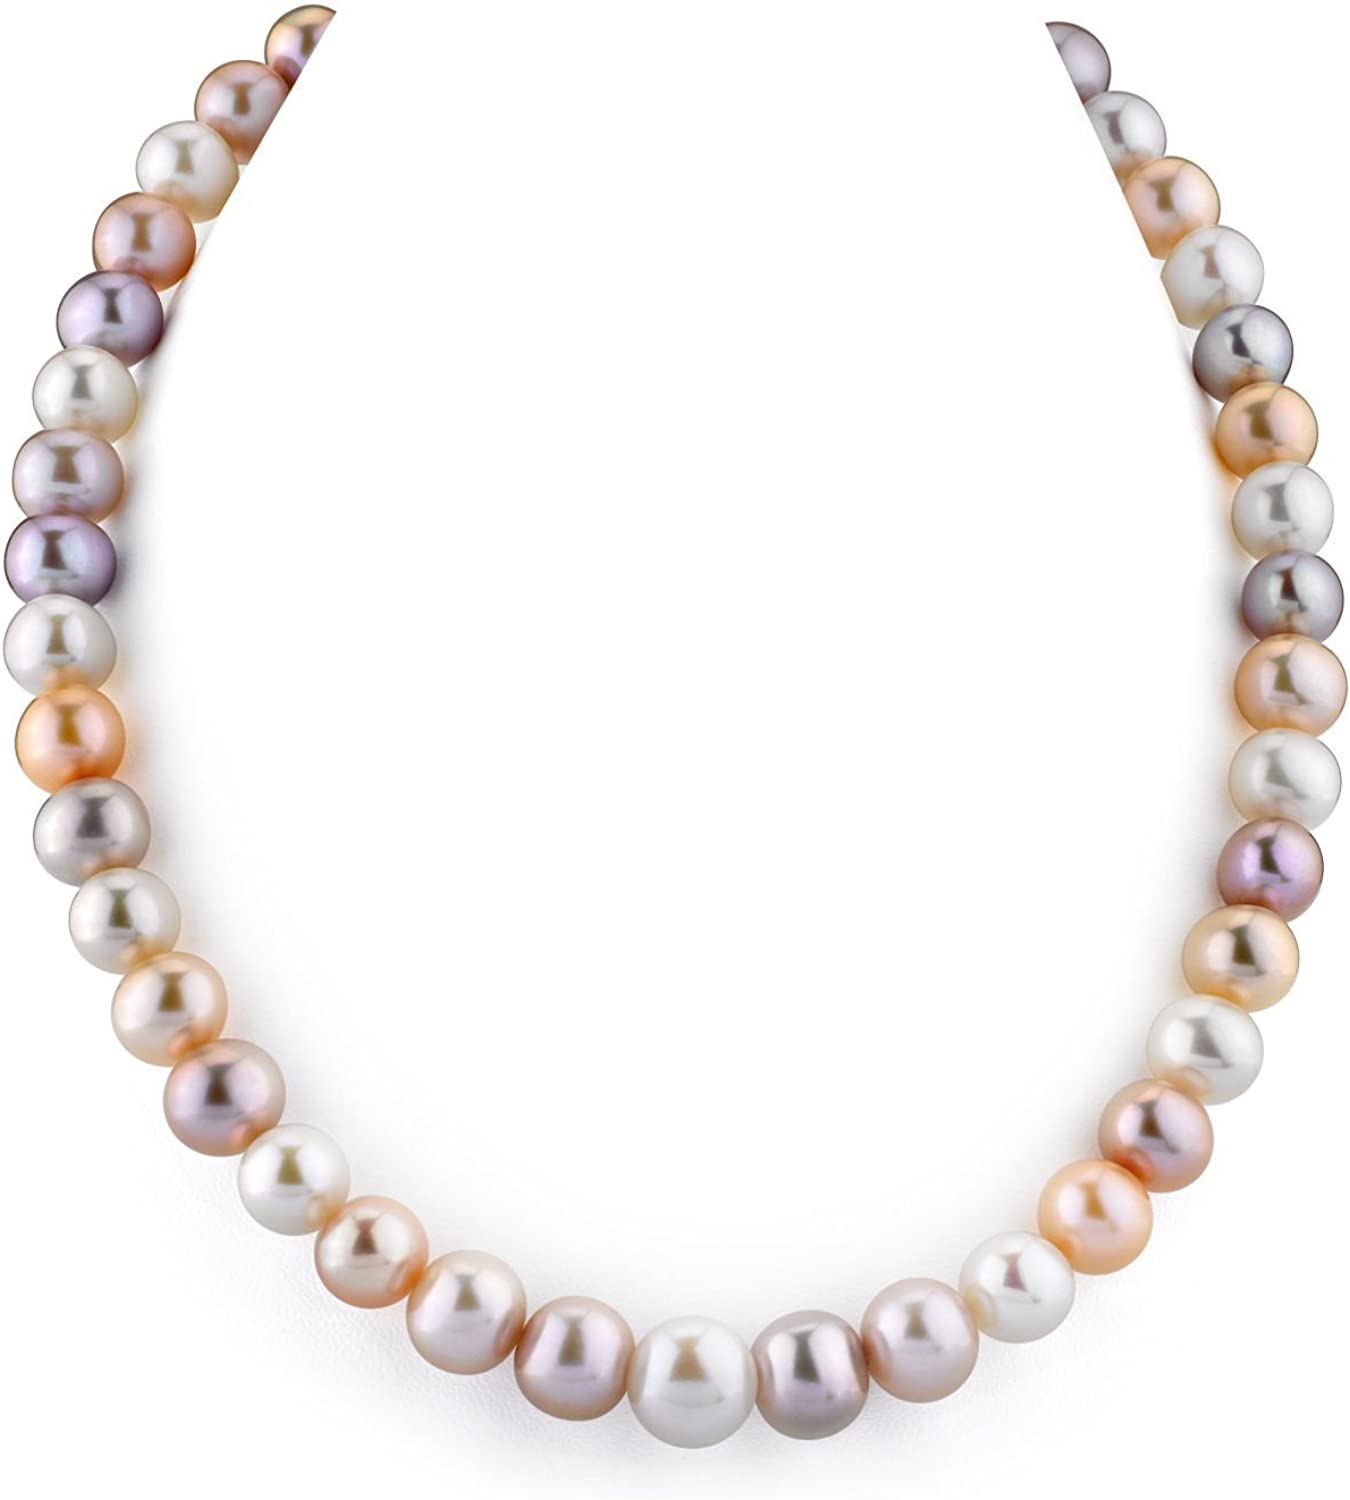 THE PEARL SOURCE 14K Gold 10-11mm AAA Quality Multicolor Freshwater Cultured Pearl Necklace for Women in 18